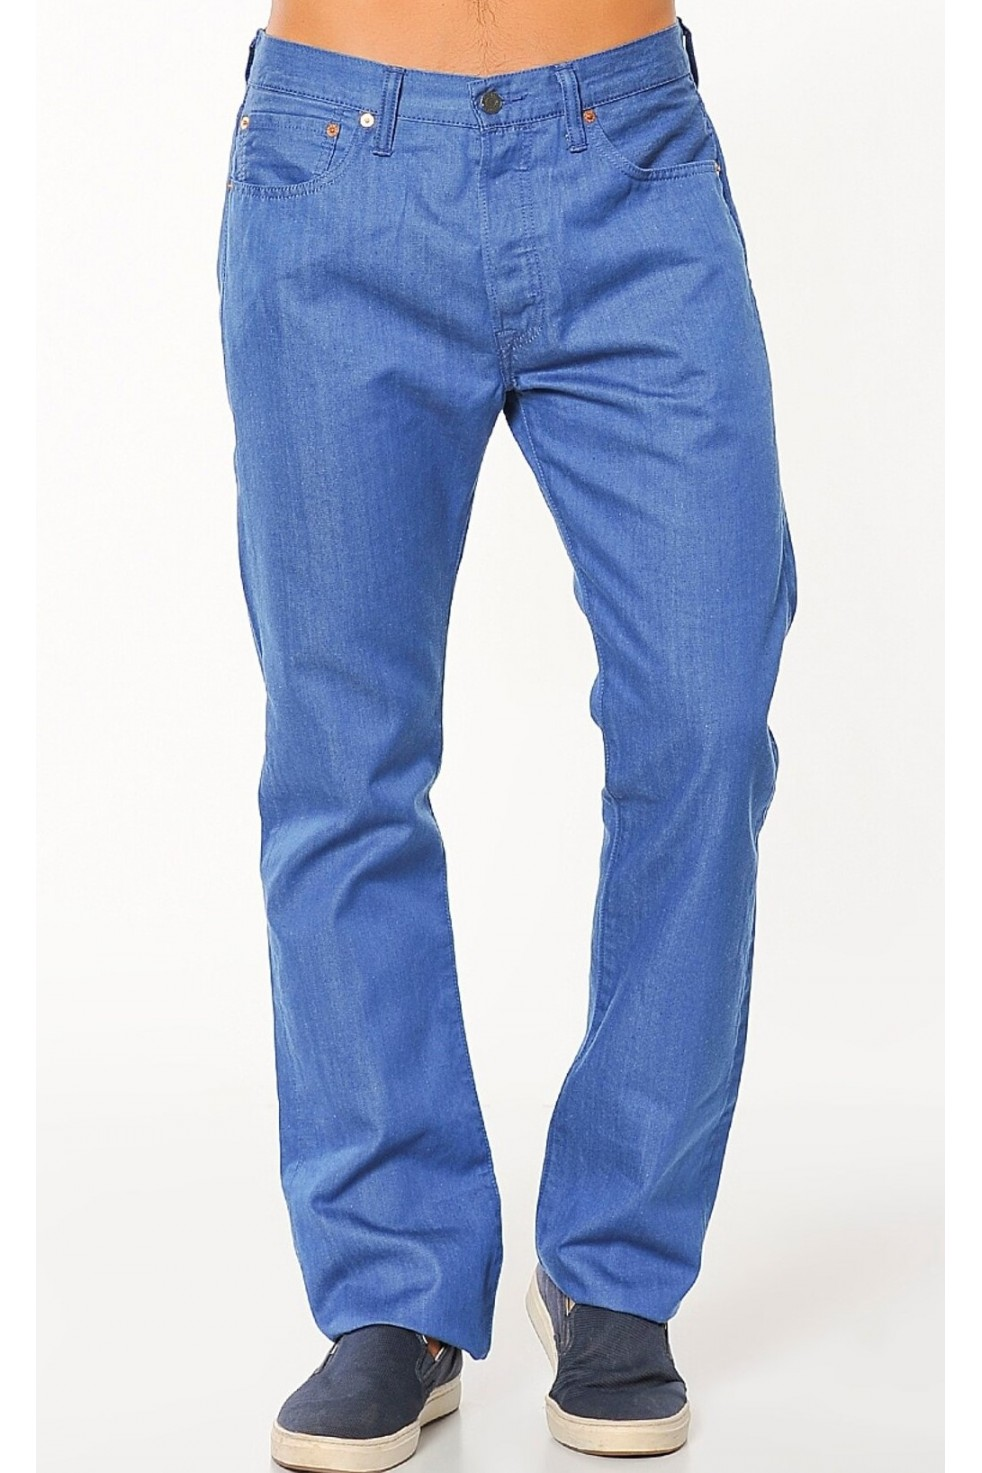 Levis-Erkek-Jean-Pantolon-501-Original-Fit-00501-1748